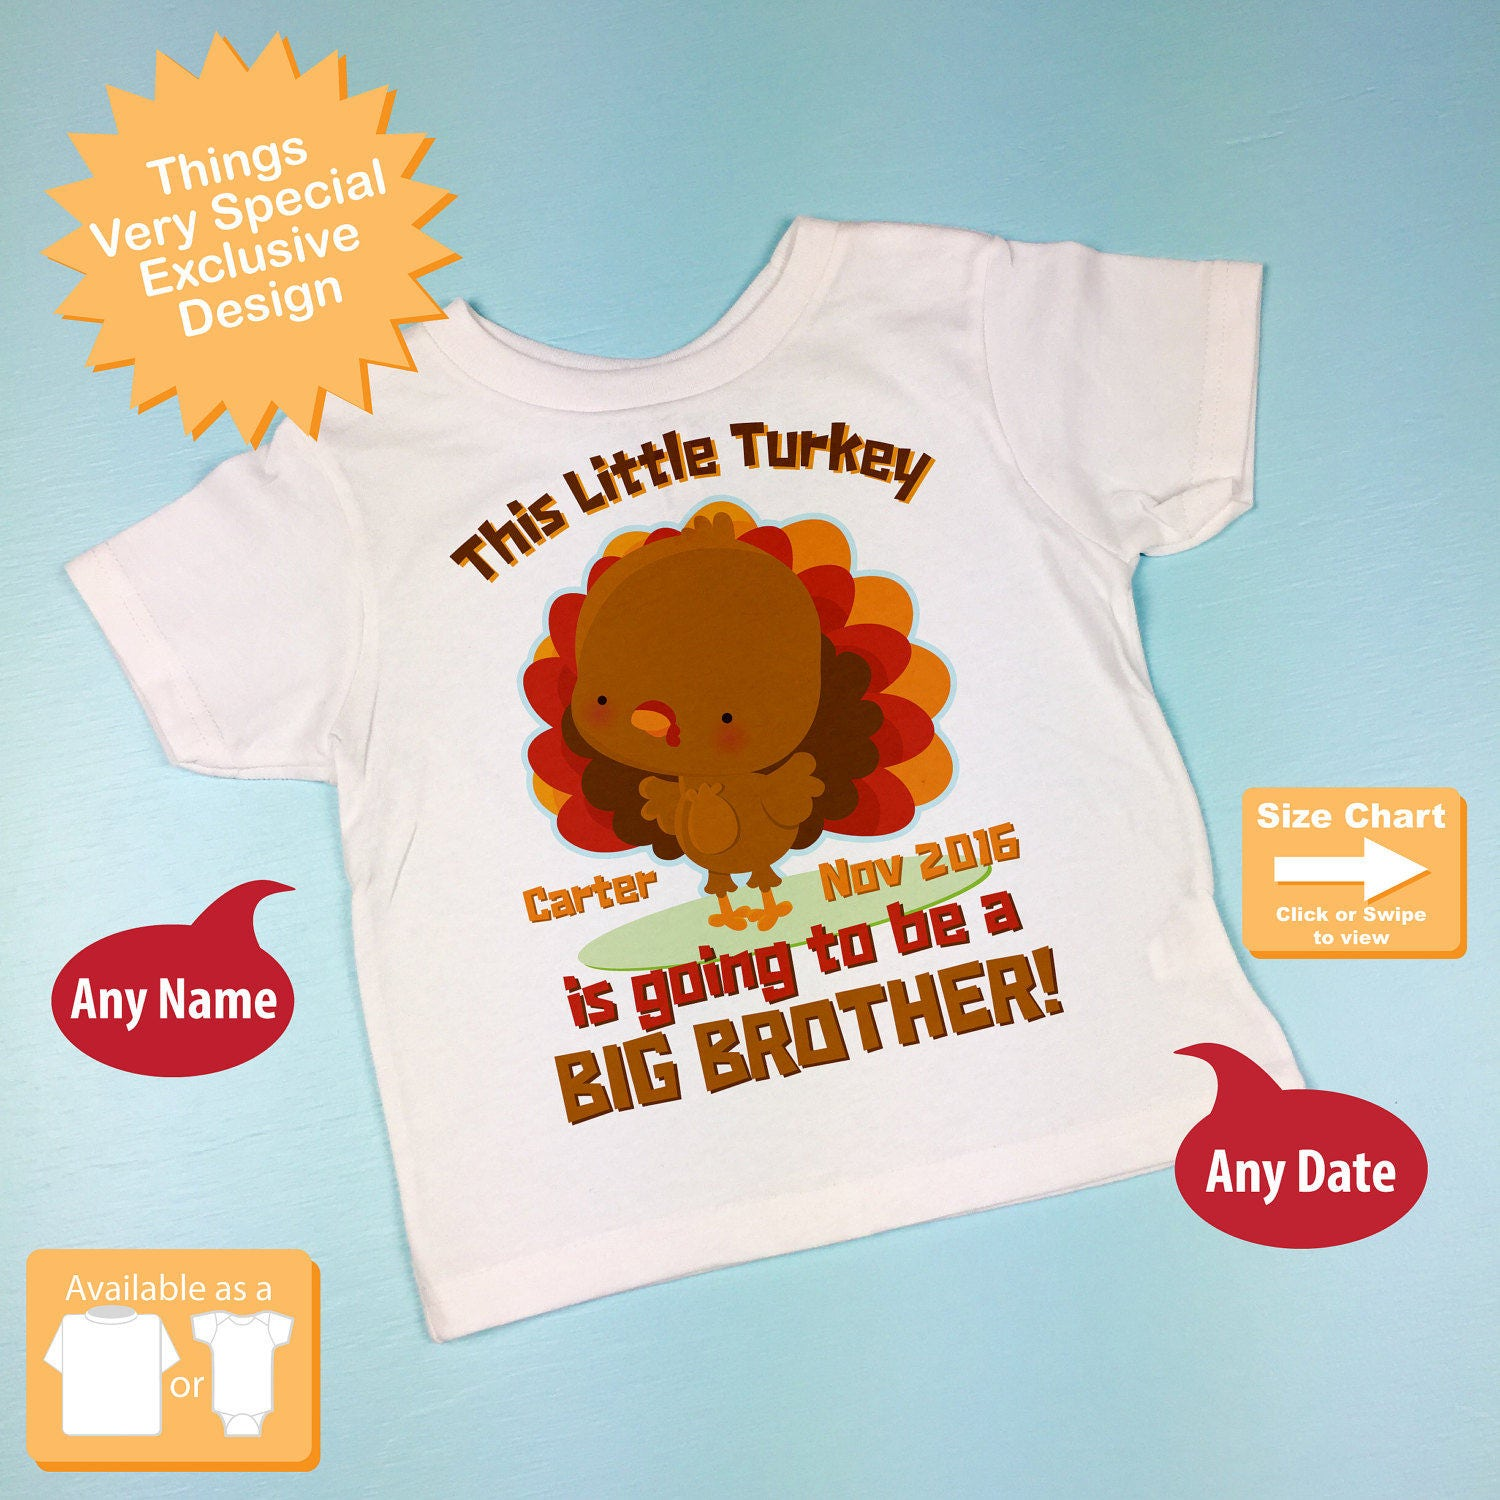 ea0fb9907 Turkey Big Brother Shirt, Thanksgiving Personalized This little turkey is  going to be a Big Brother Shirt Pregnancy Announcement 10242015e